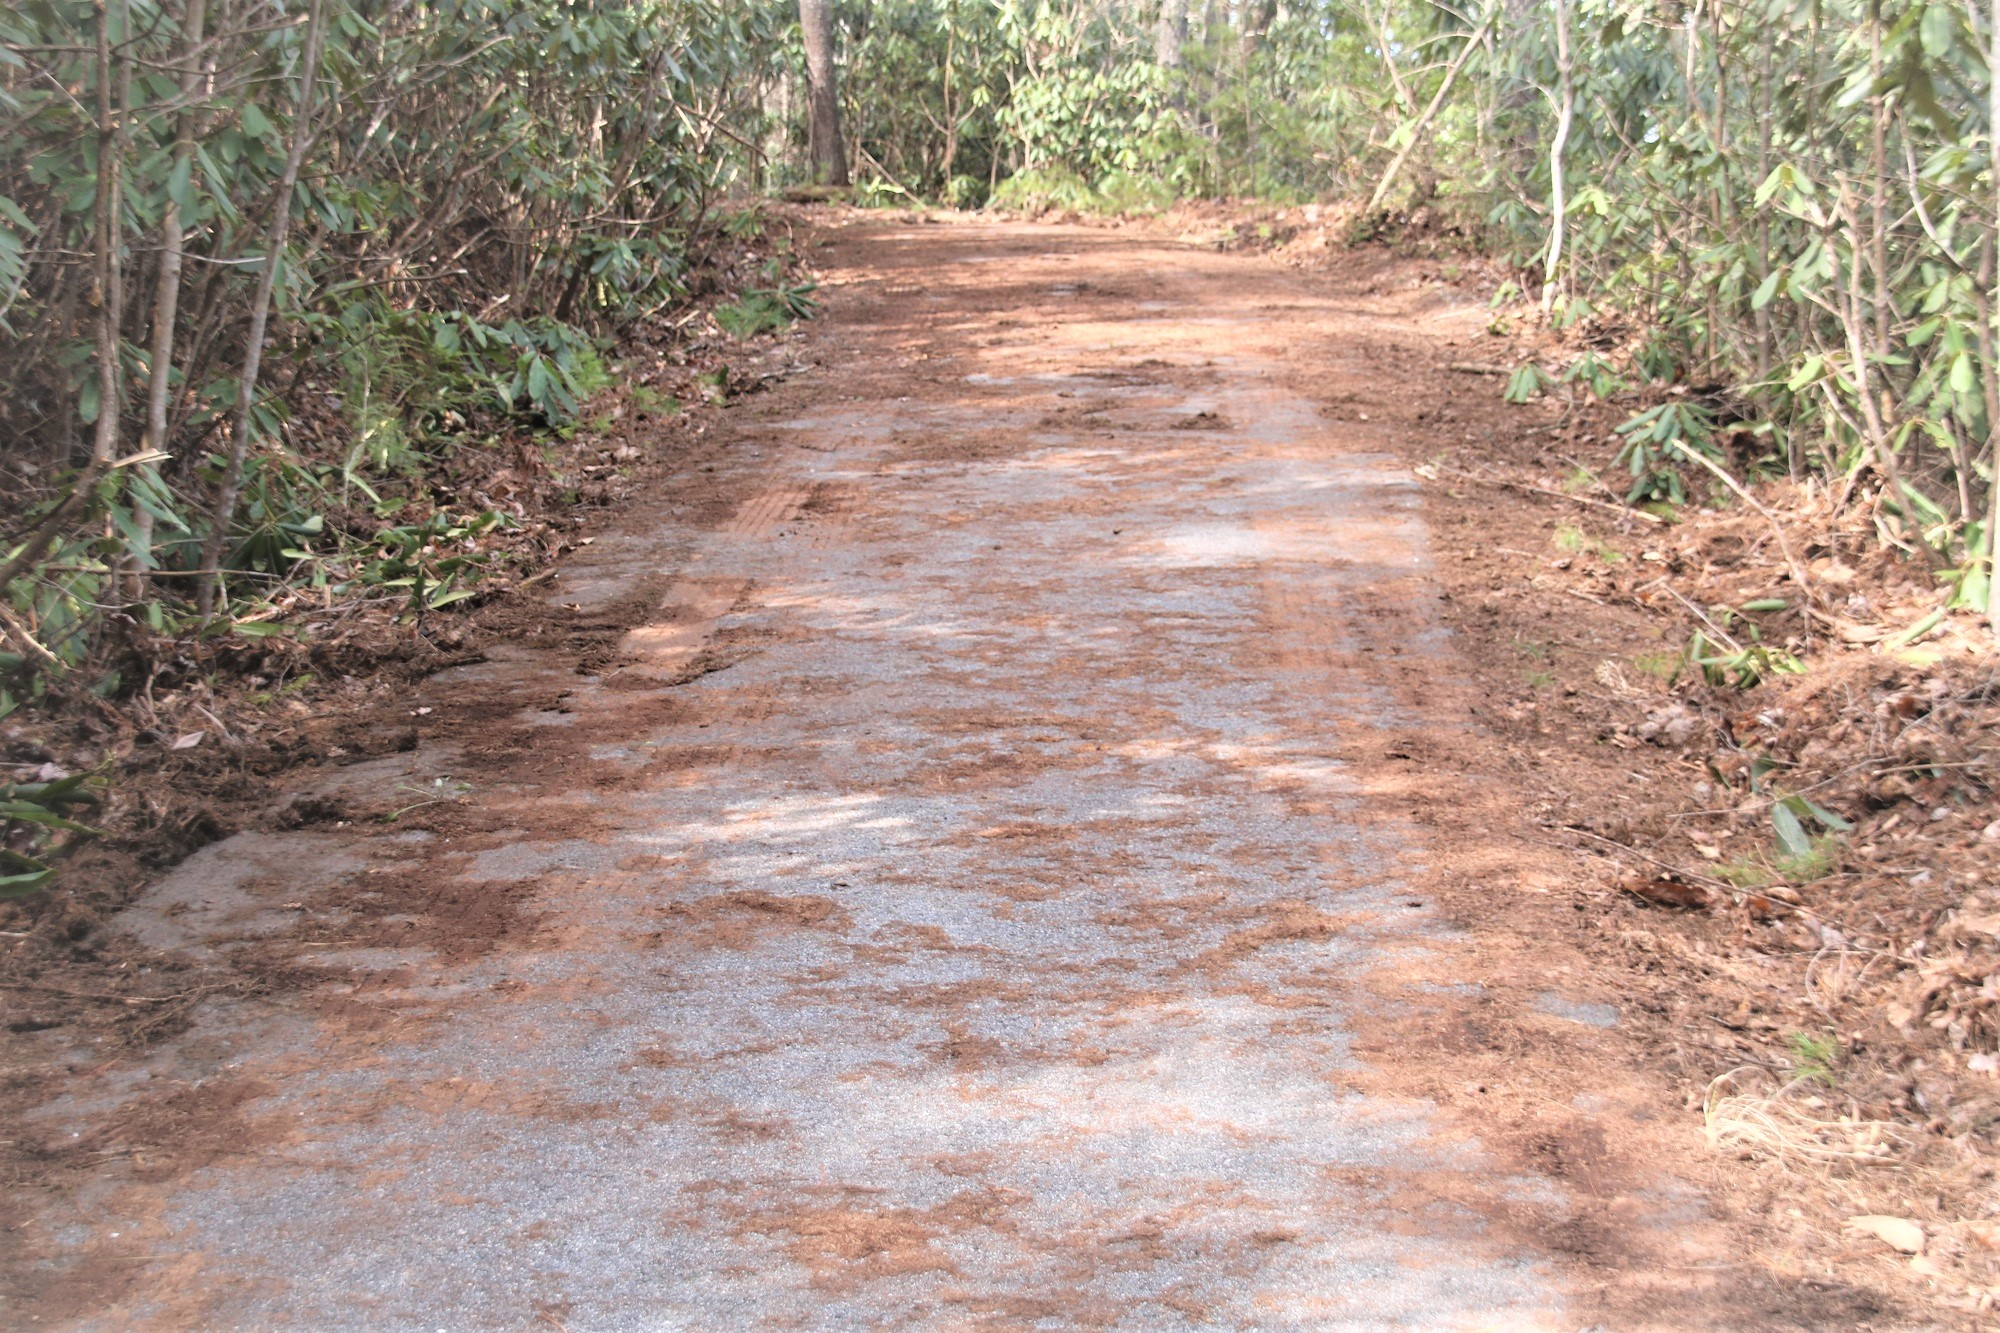 MOTIVATED SELLER 2 CONTIGUOUS LAND TRACTS ON LEATHERWOOD MOUNTAIN FOR SALE